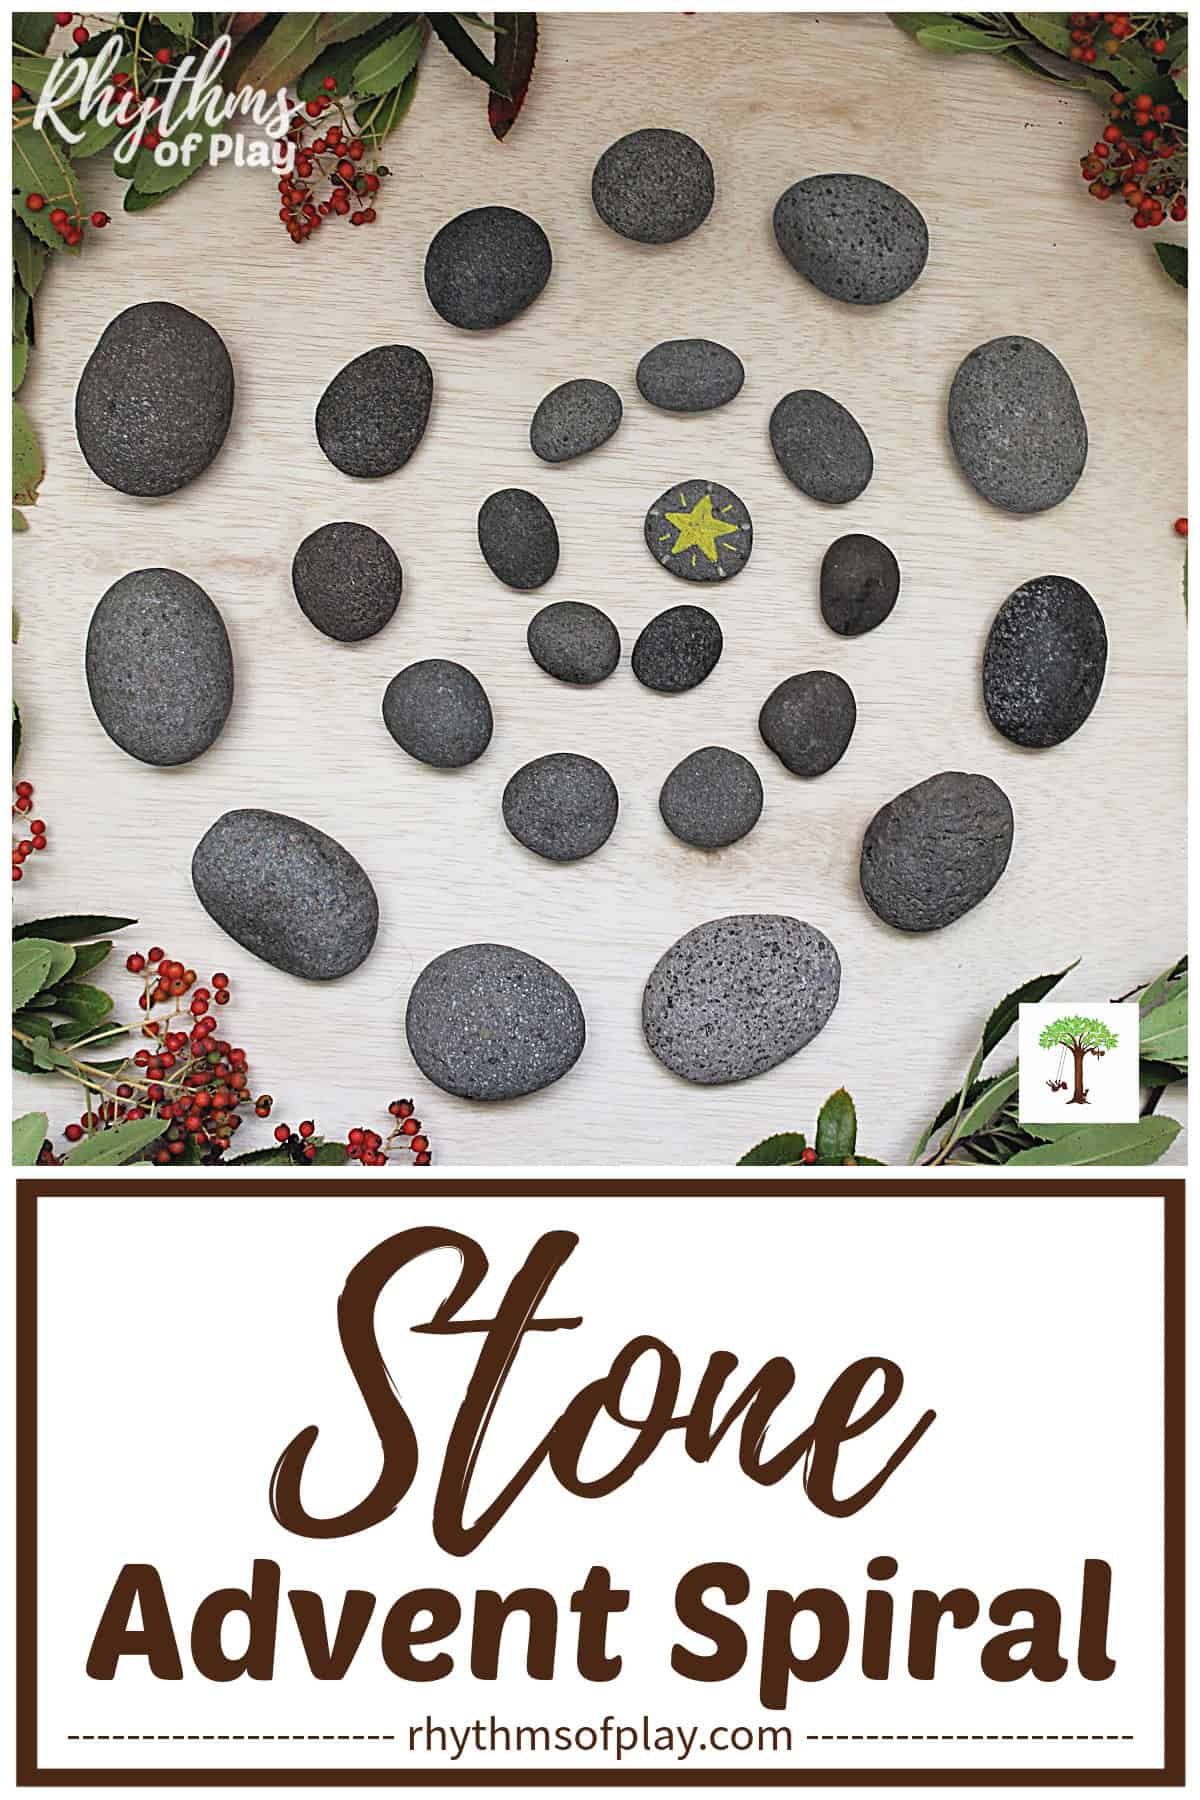 Advent spiral made with stones